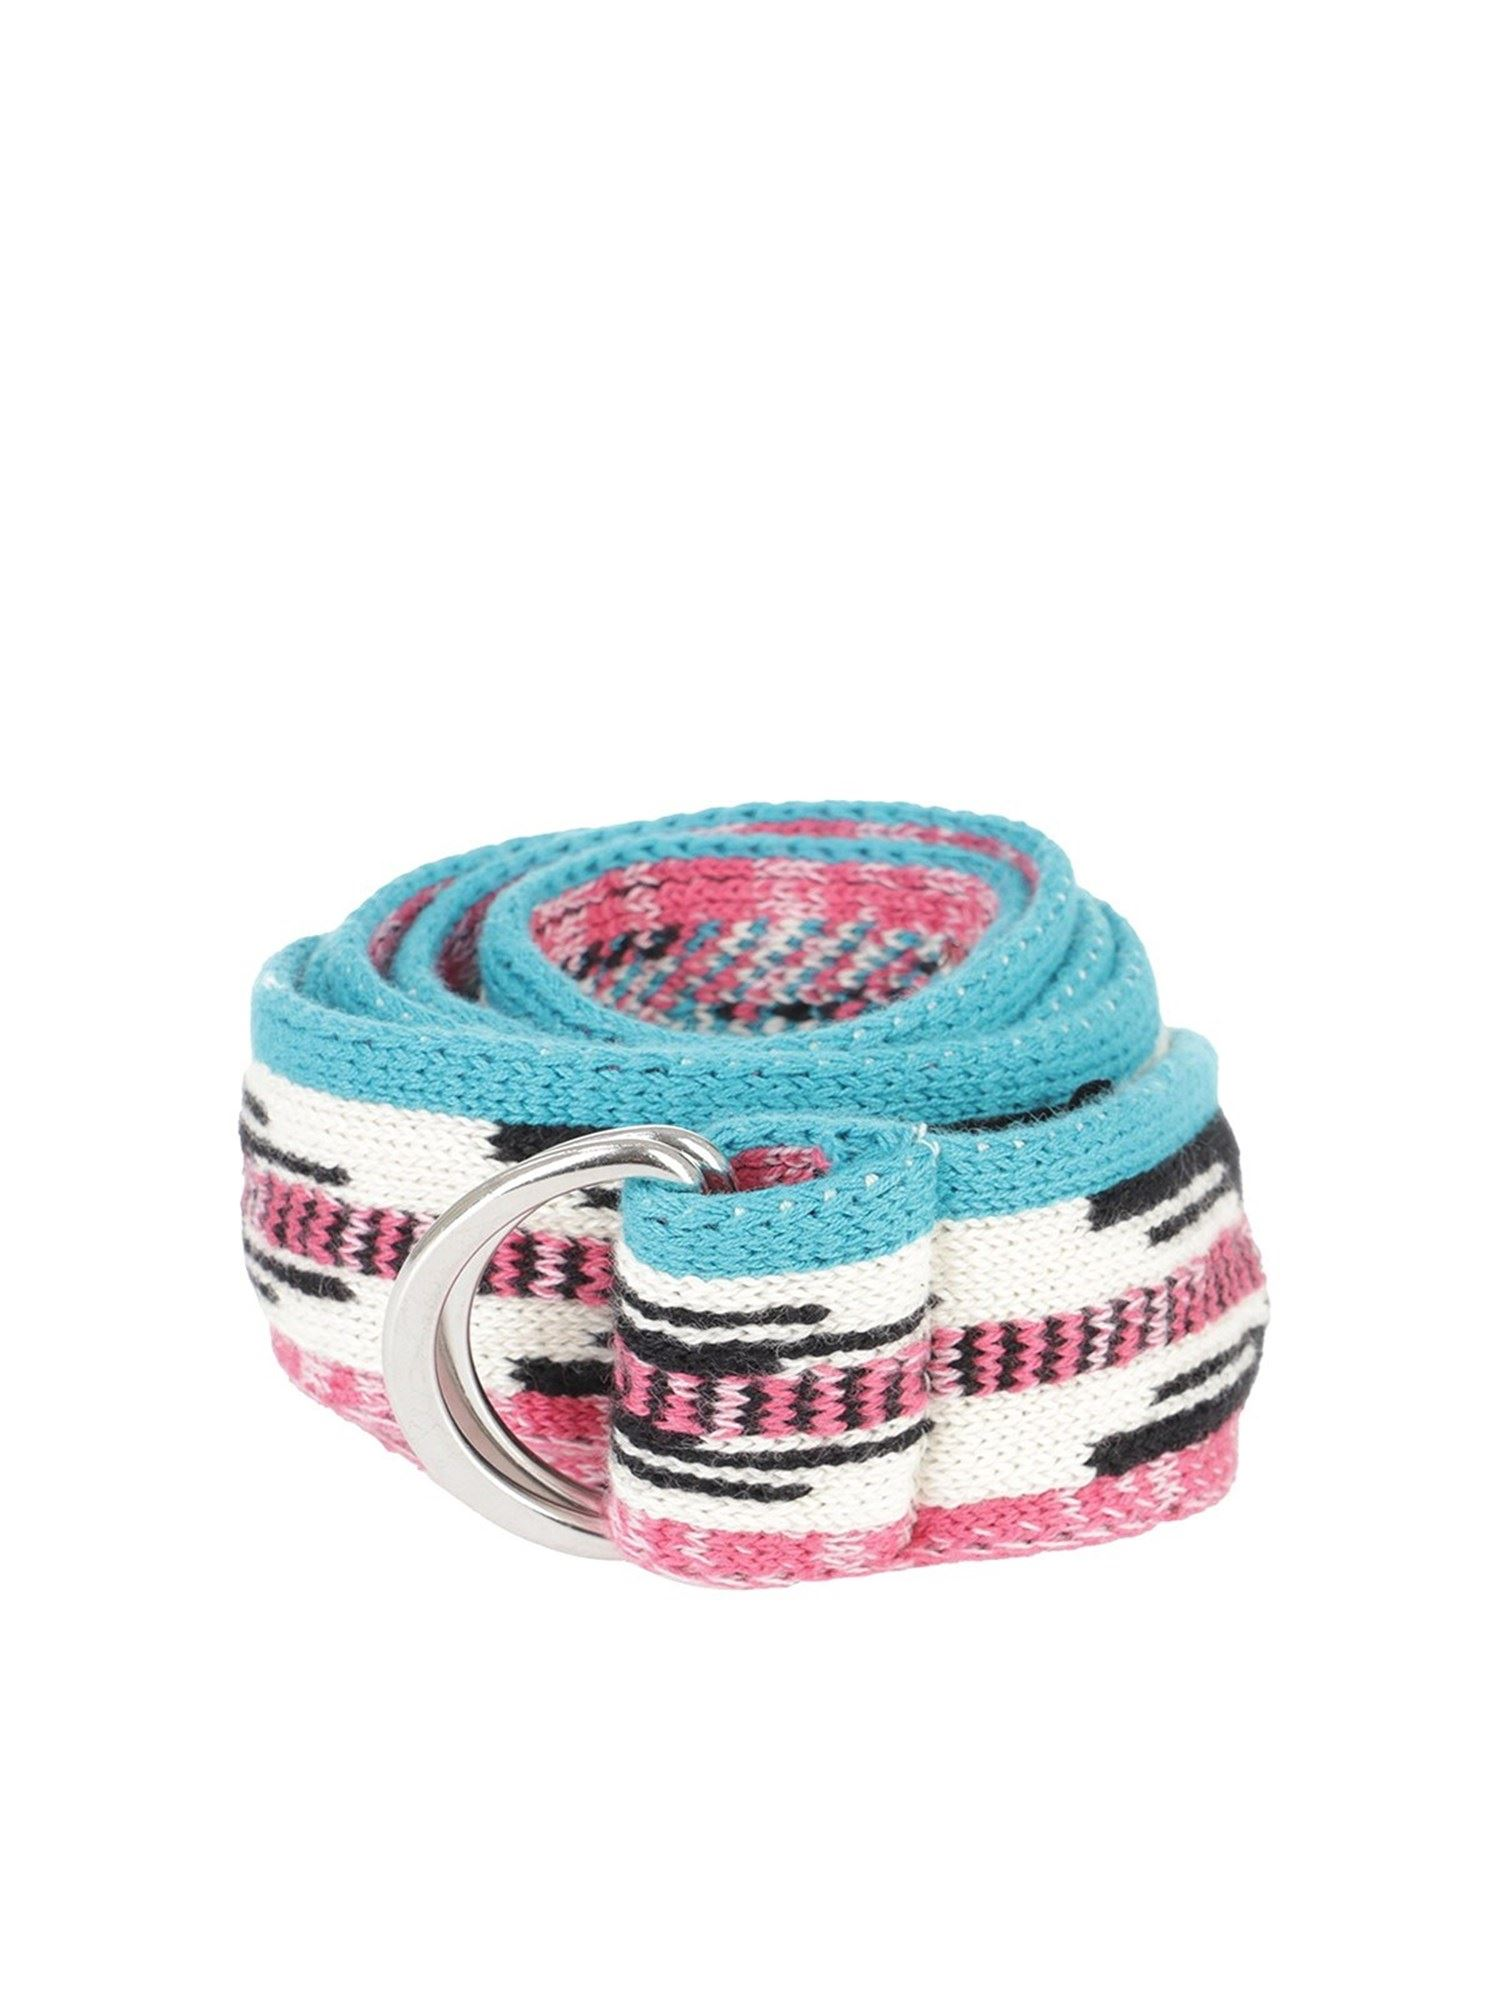 Isabel Marant Belts ISABEL MARANT BALKNIT BELT IN WHITE